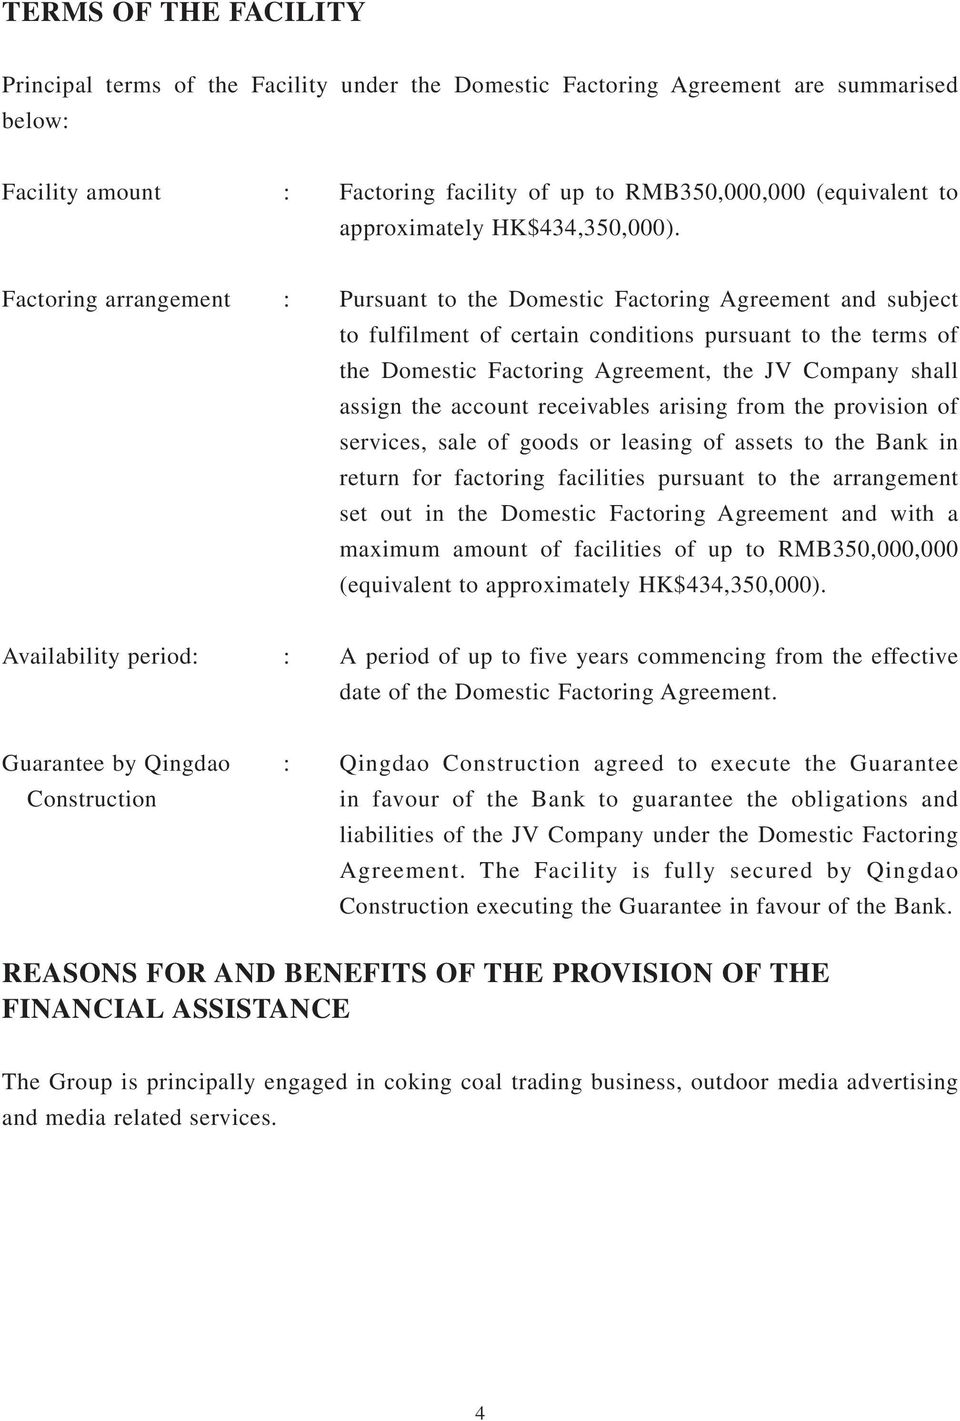 Factoring arrangement : Pursuant to the Domestic Factoring Agreement and subject to fulfilment of certain conditions pursuant to the terms of the Domestic Factoring Agreement, the JV Company shall